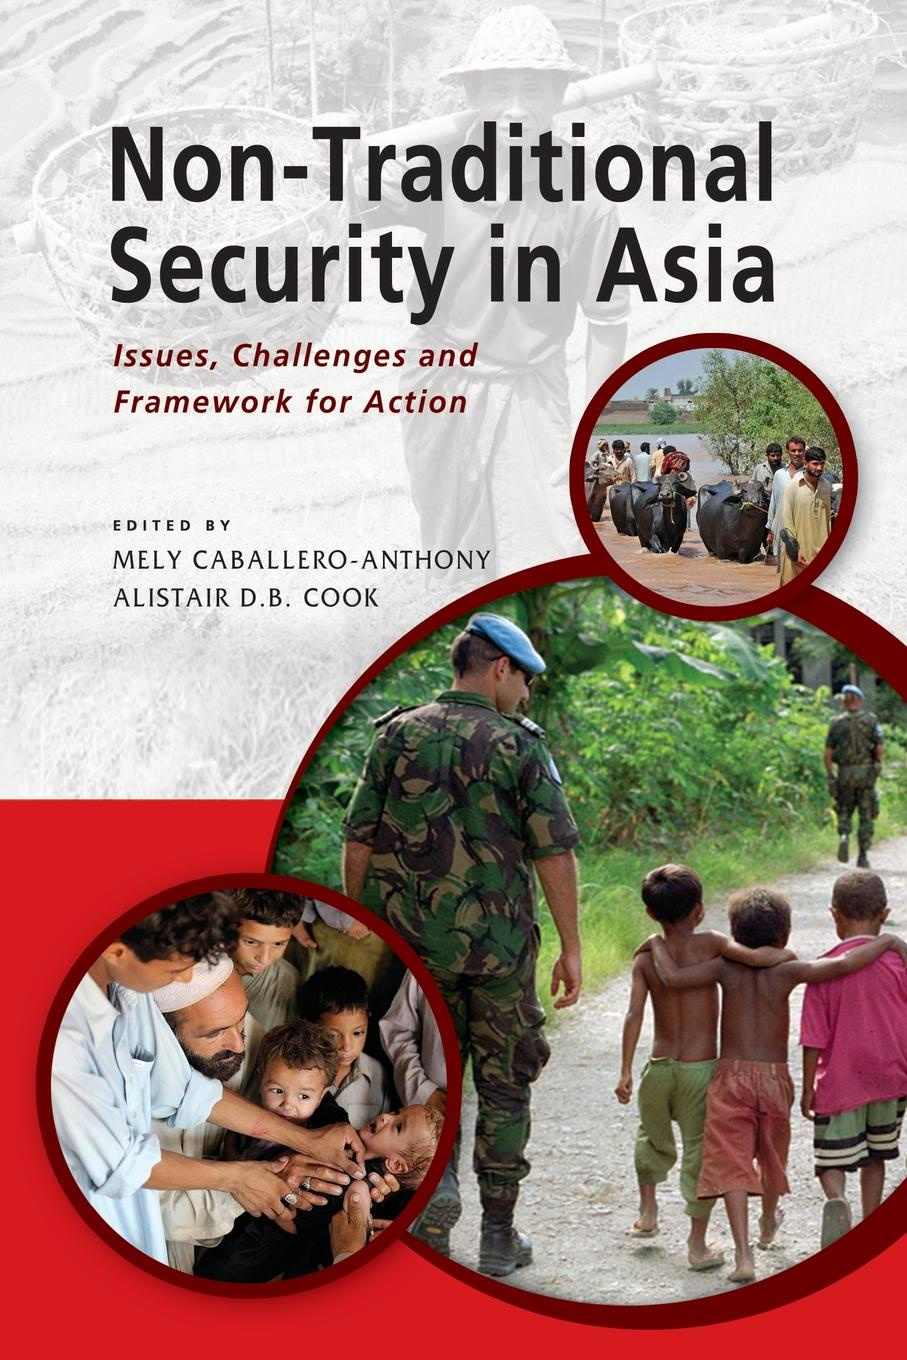 Non-Traditional Security in Asia. Issues, Challenges and Framework for Action education and globalization in southeast asia issues and challenges